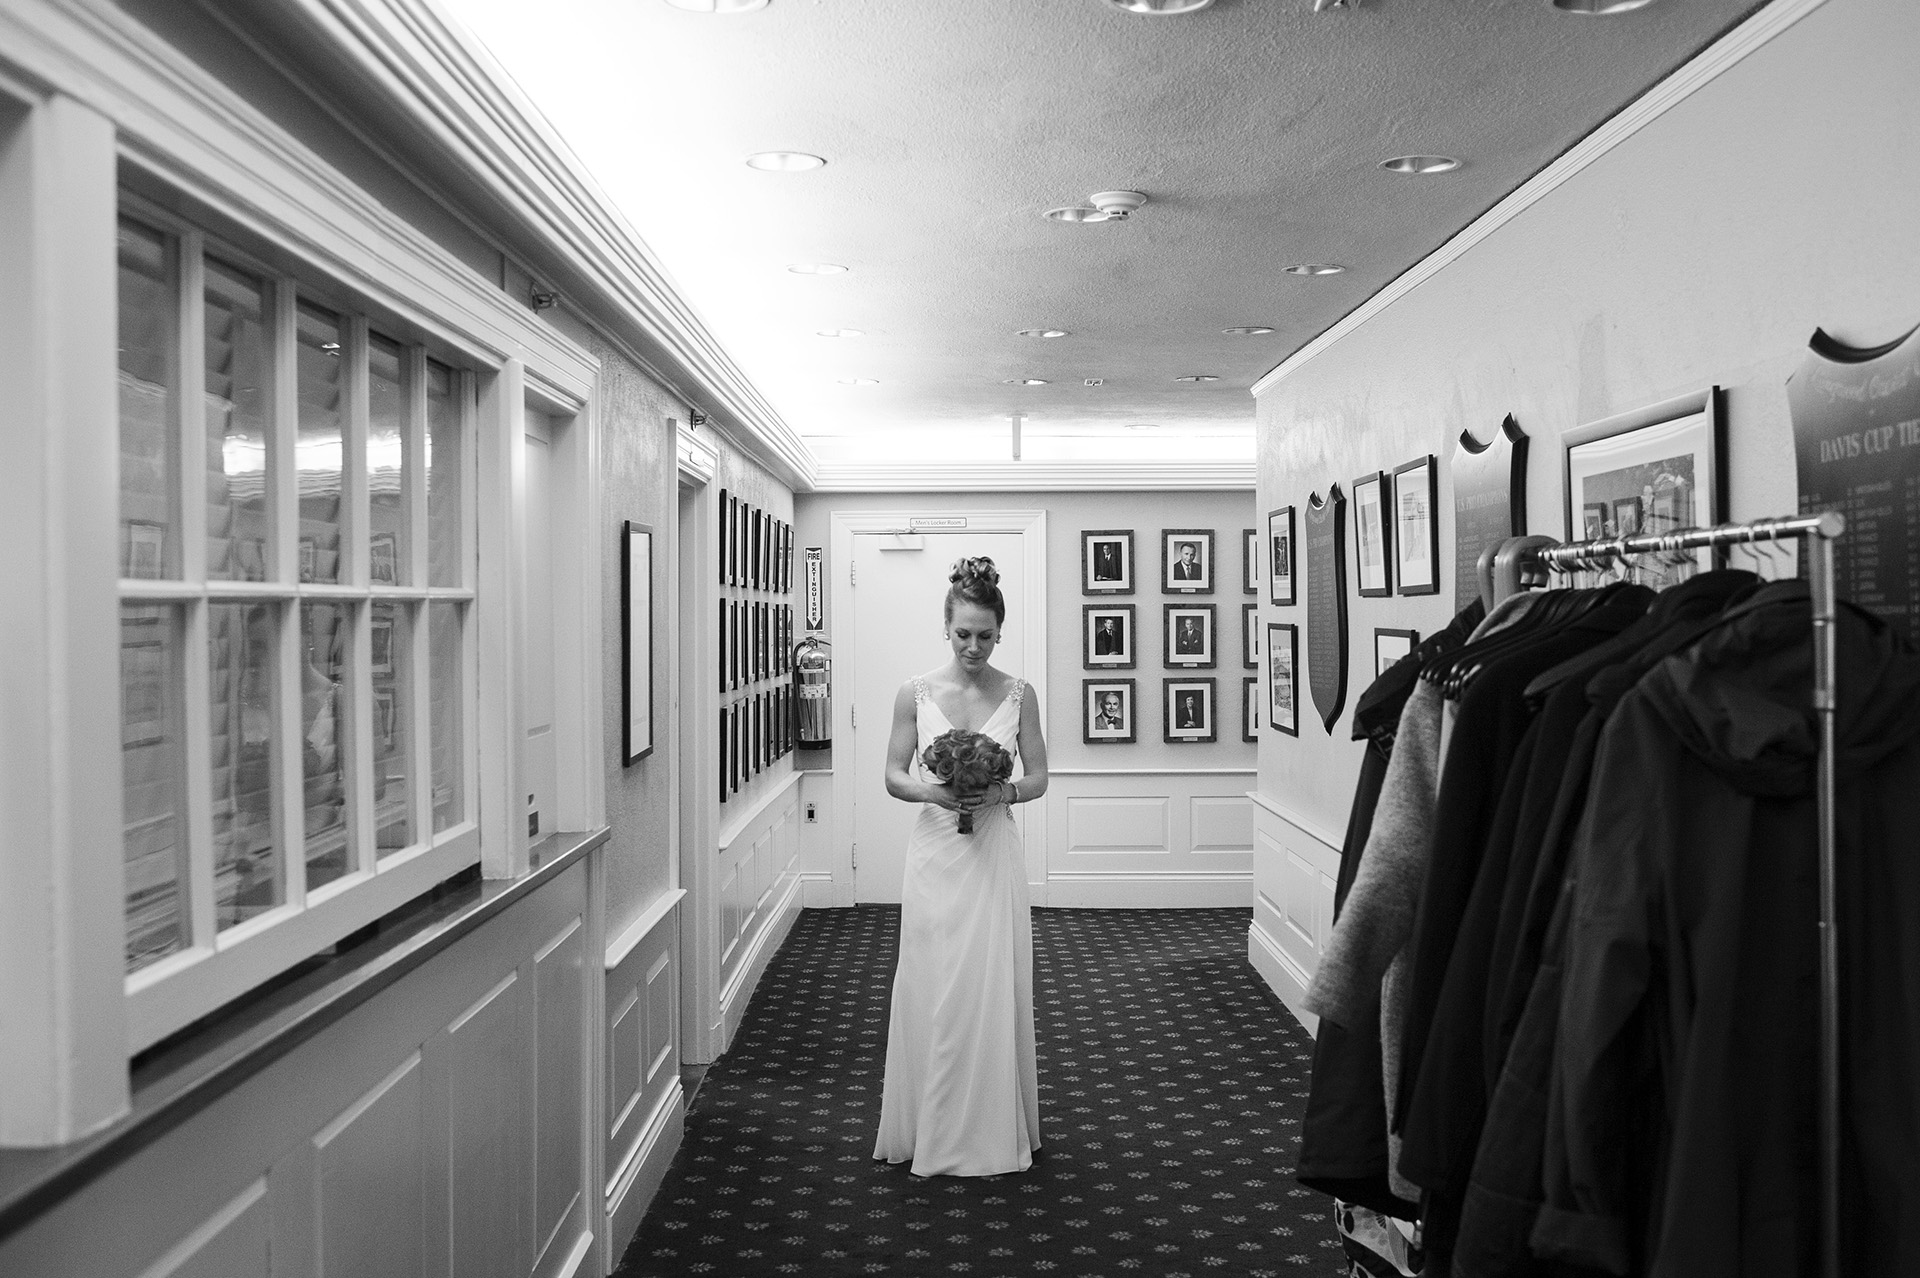 Chestnut Hill, MA Elopement Bride Image | The bride takes a quiet moment to herself in the hallway